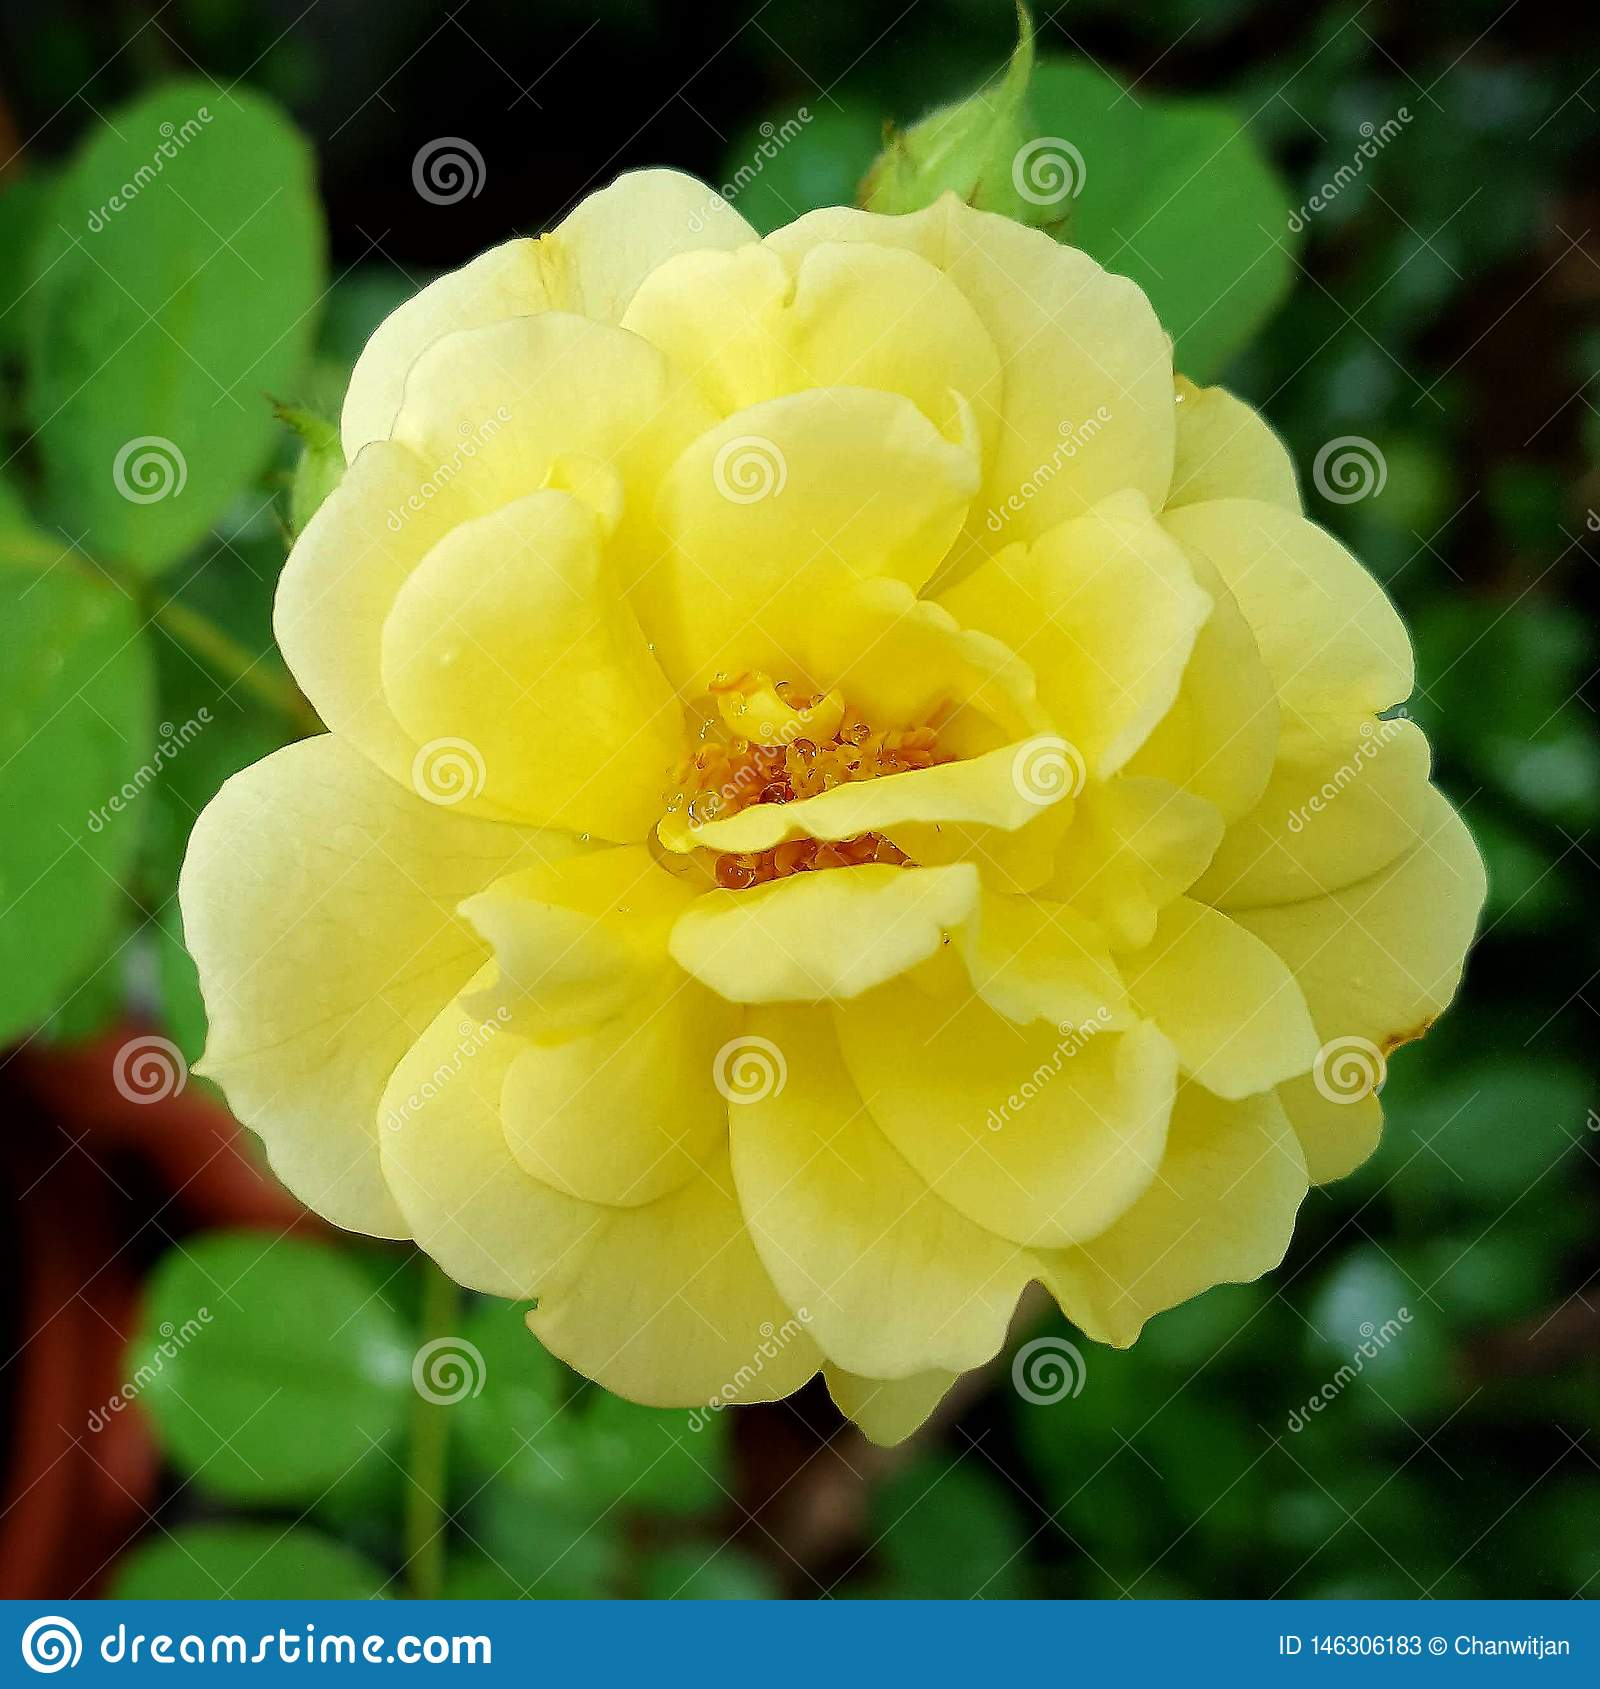 Beautiful yellow blossom rose in the garden